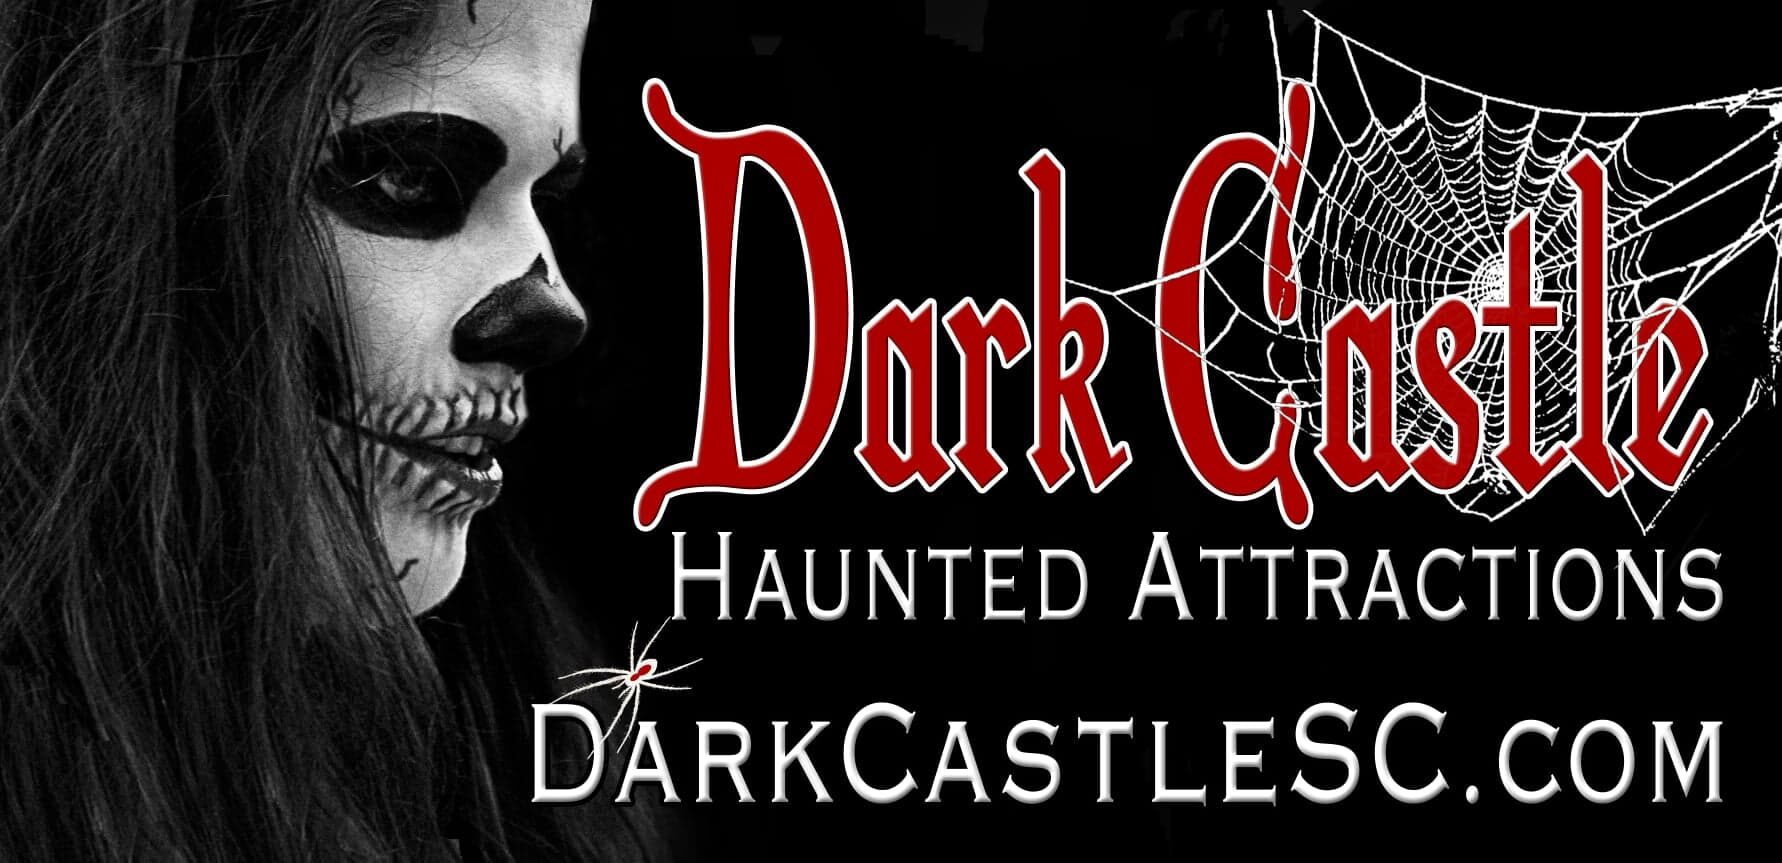 Dark Castle Haunted Attractions